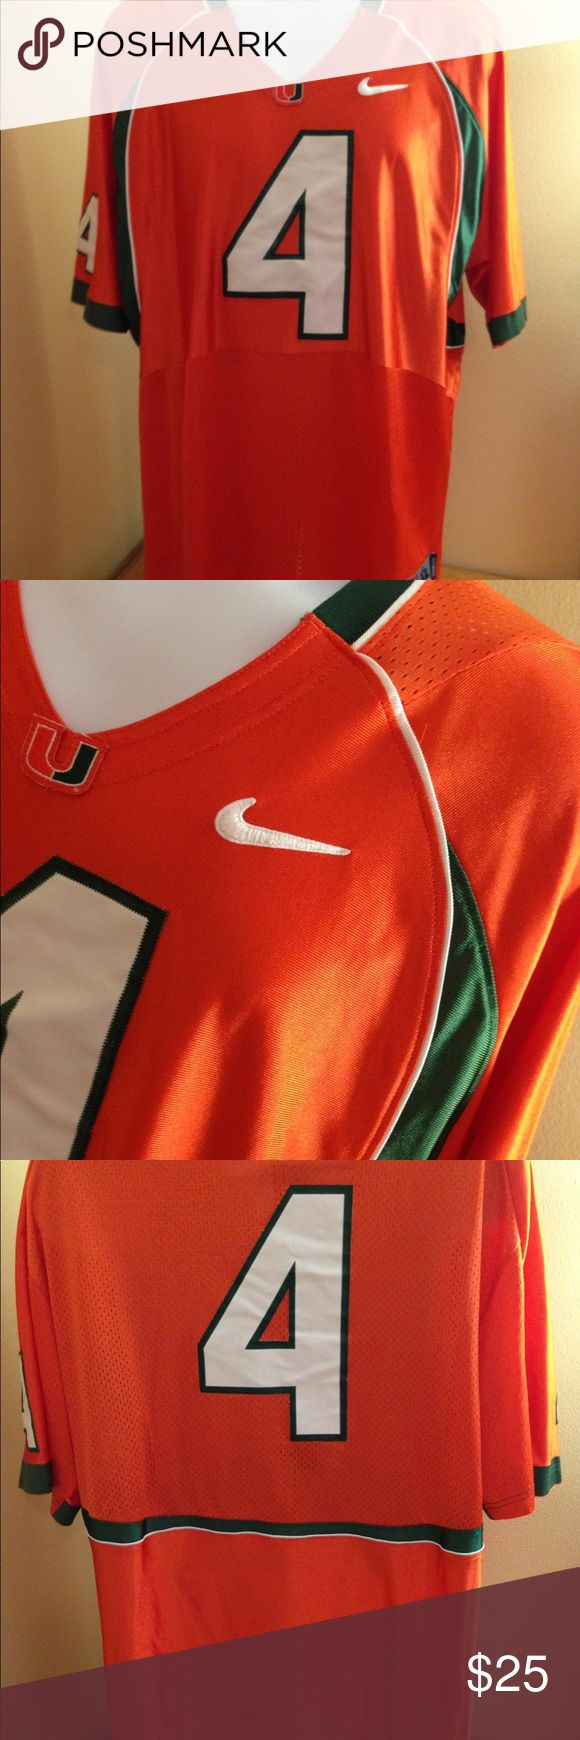 "University of Miami Nike Jersey Sz XL University of Miami Nike Jersey Sz XL in great preowned condition. Armpit to armpit 25"", number 4, see all pics! Nike Shirts"